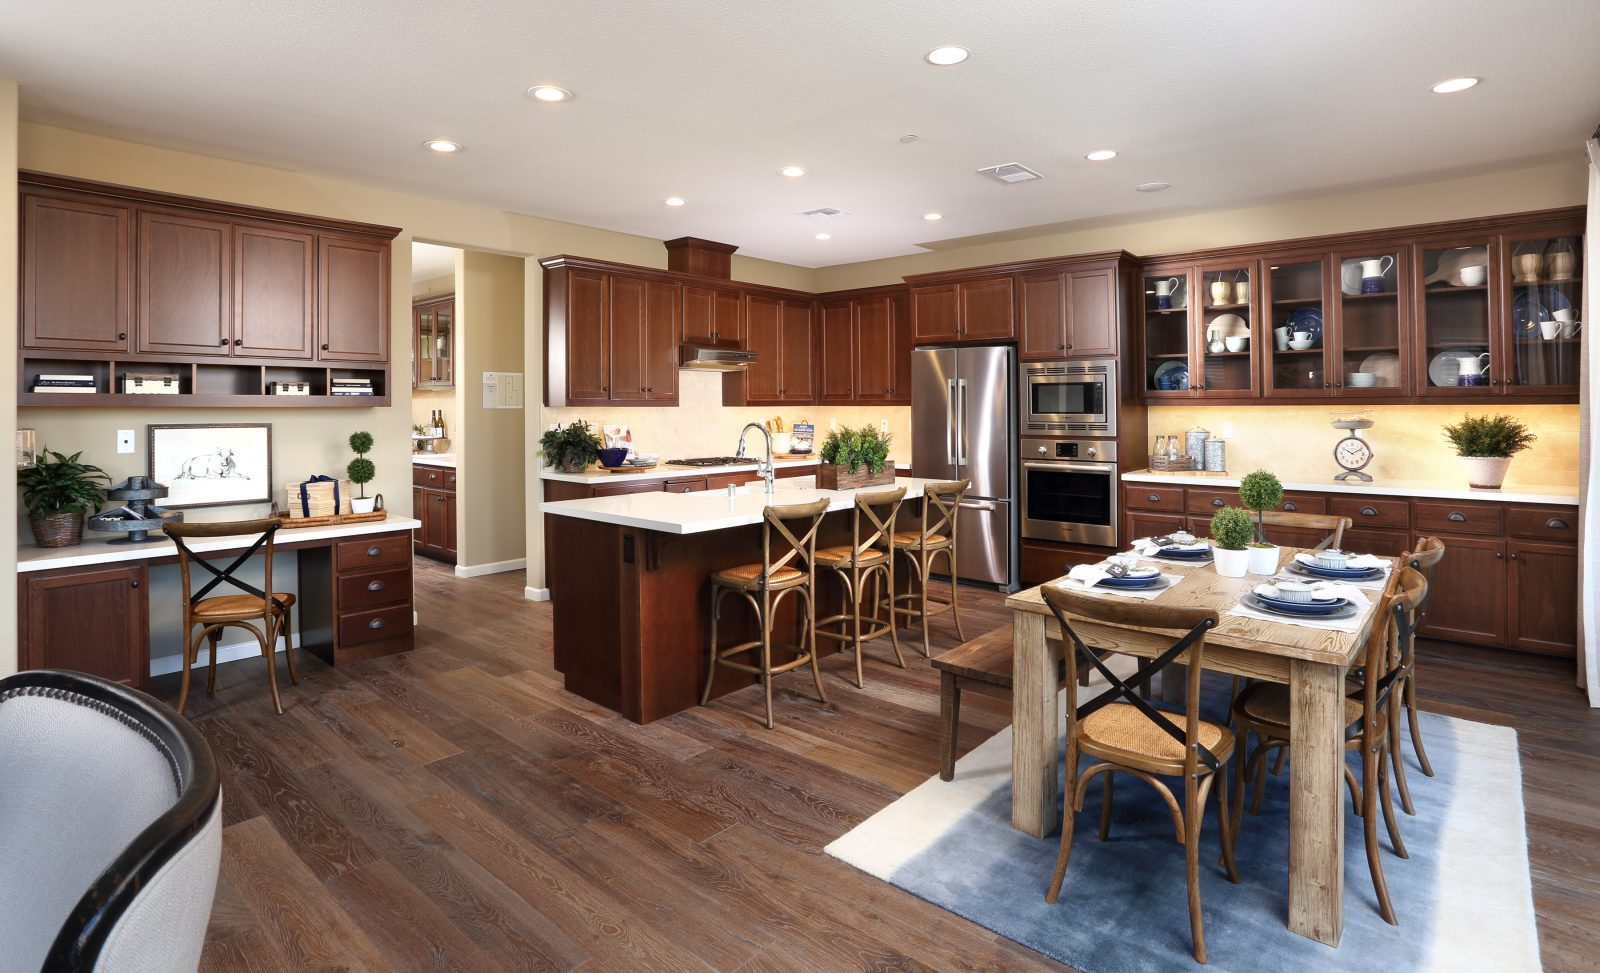 Gourmet kitchen in new luxury home | Merritt at Emerson Ranch in Oakley, CA | Brookfield Residential